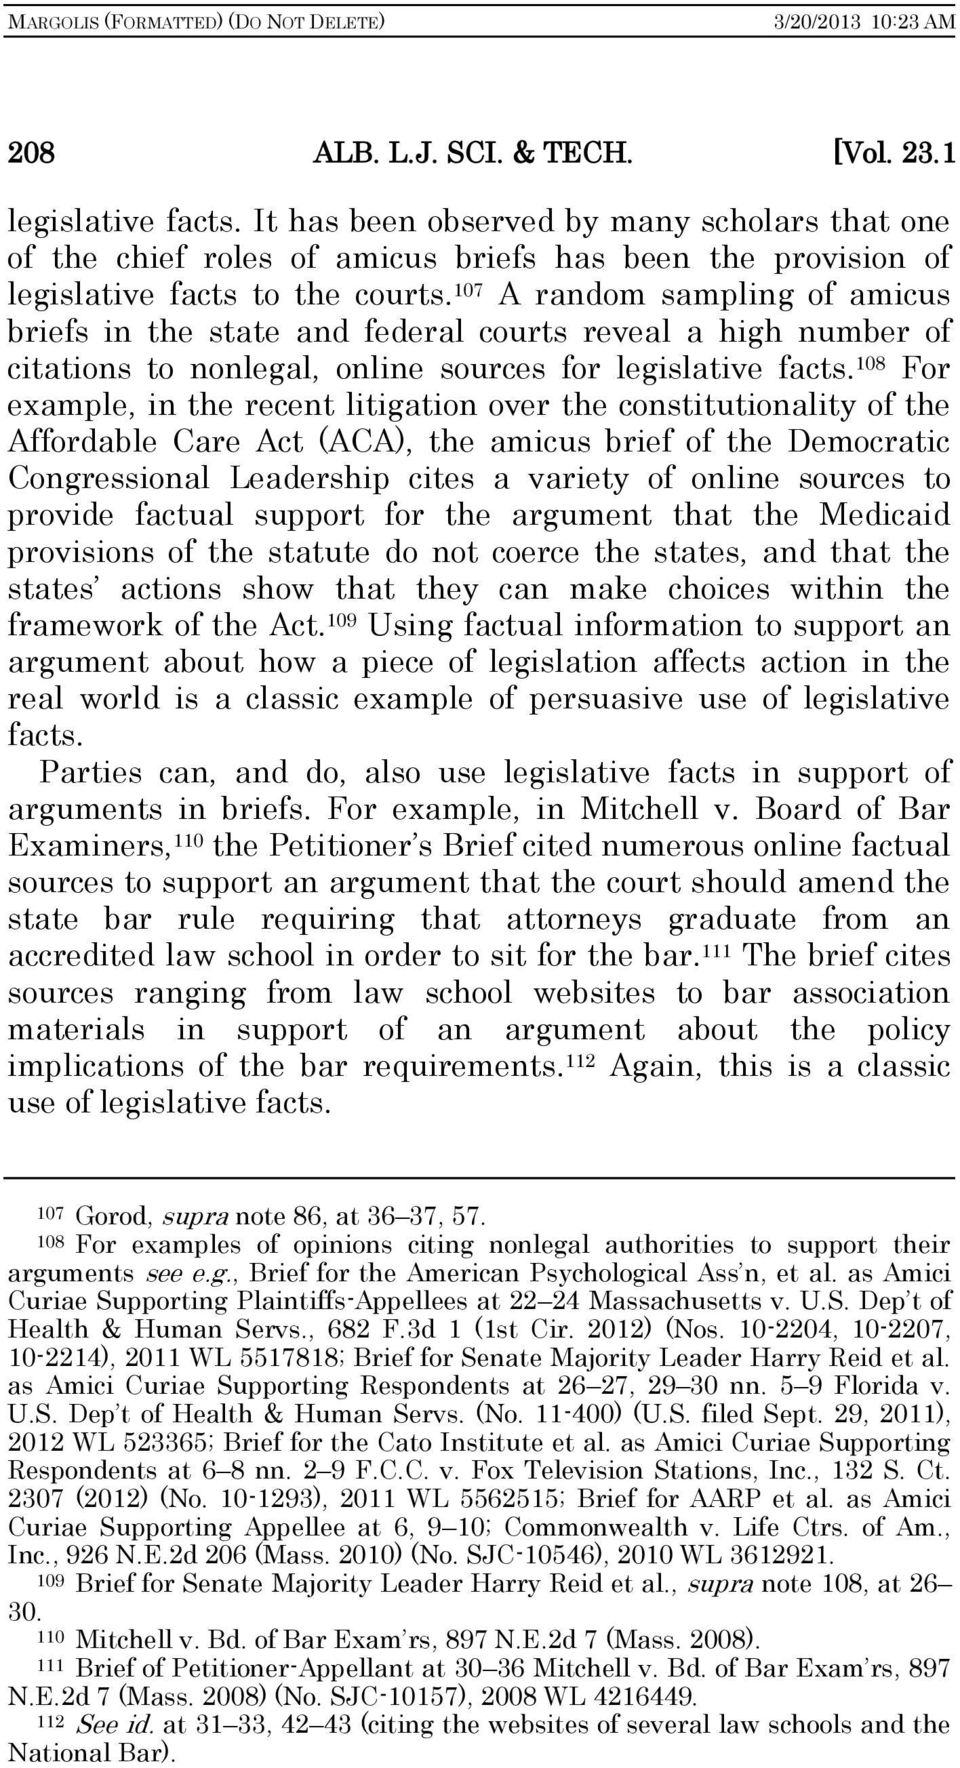 108 For example, in the recent litigation over the constitutionality of the Affordable Care Act (ACA), the amicus brief of the Democratic Congressional Leadership cites a variety of online sources to